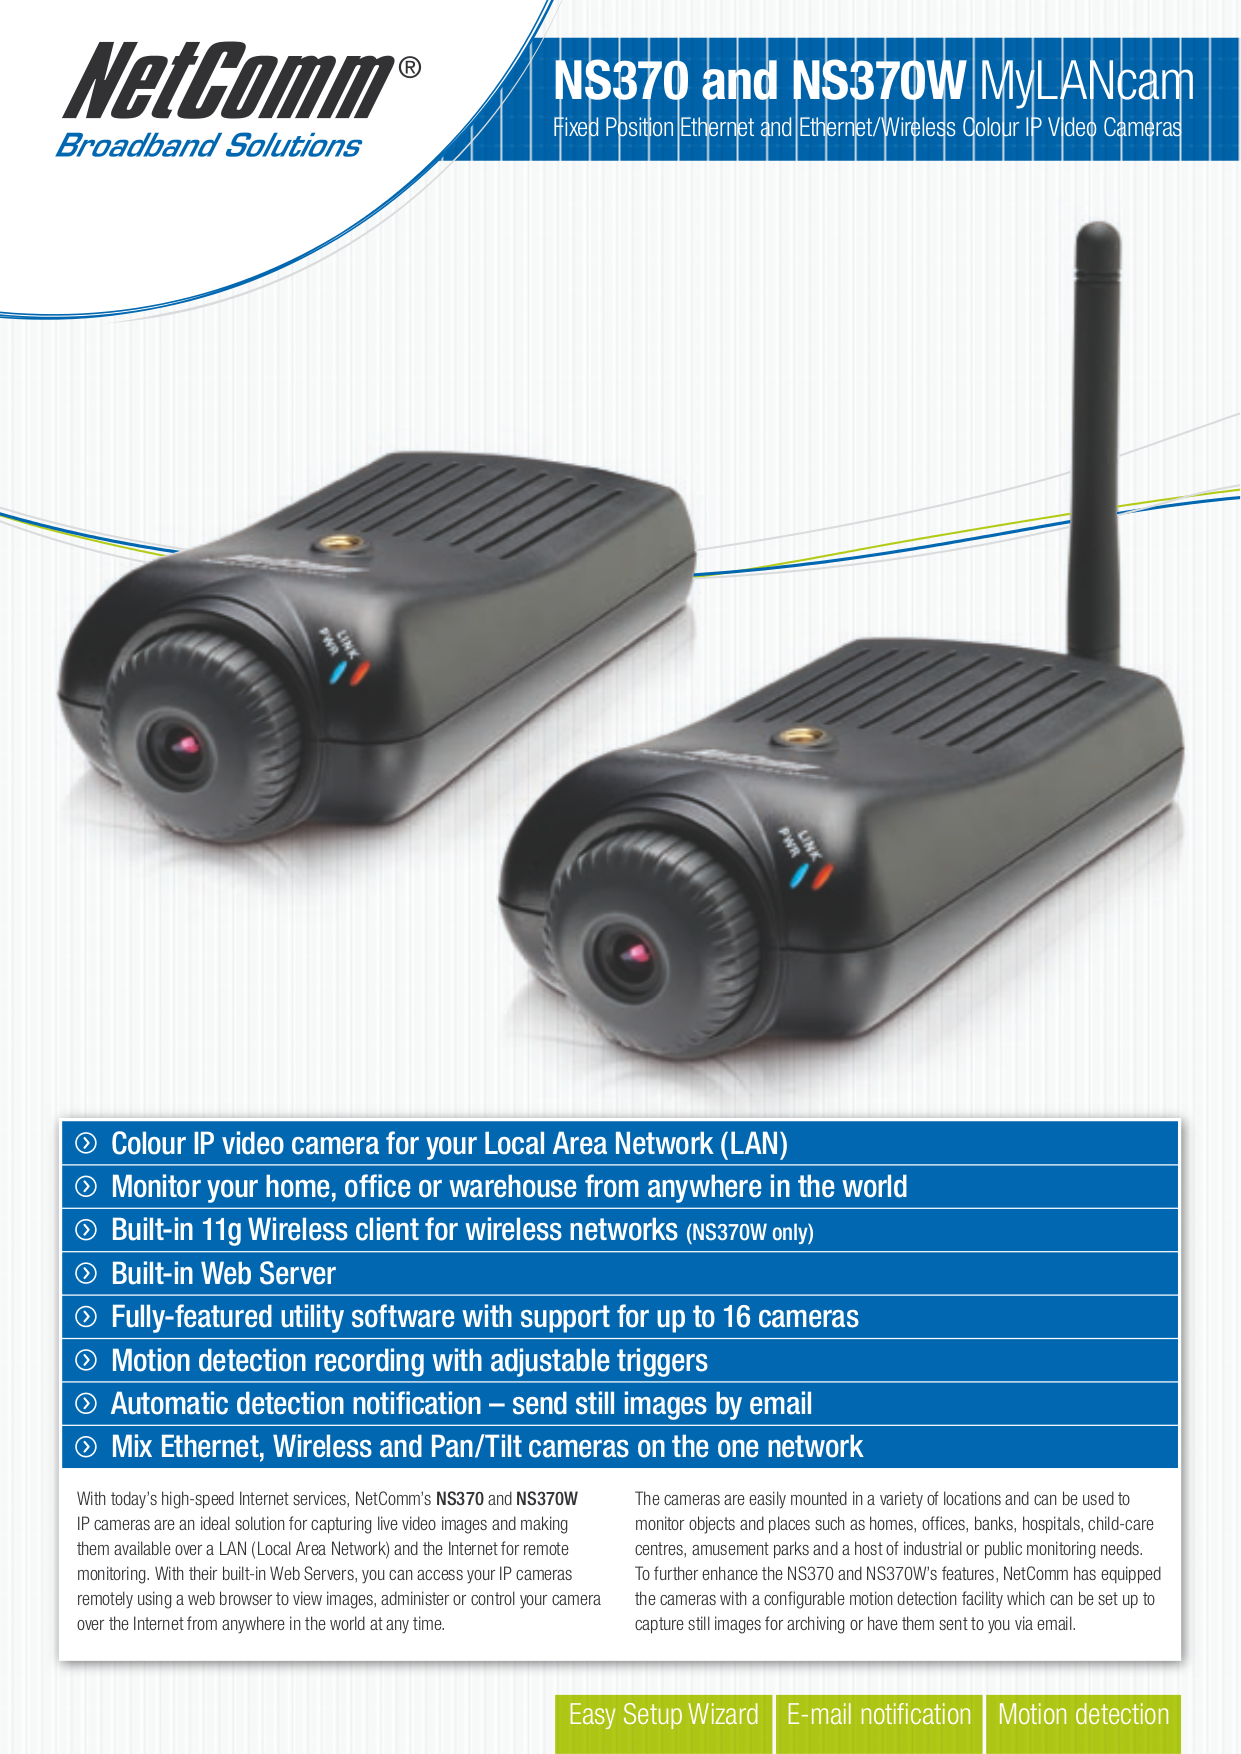 pdf for Netcomm Security Camera NS370 manual